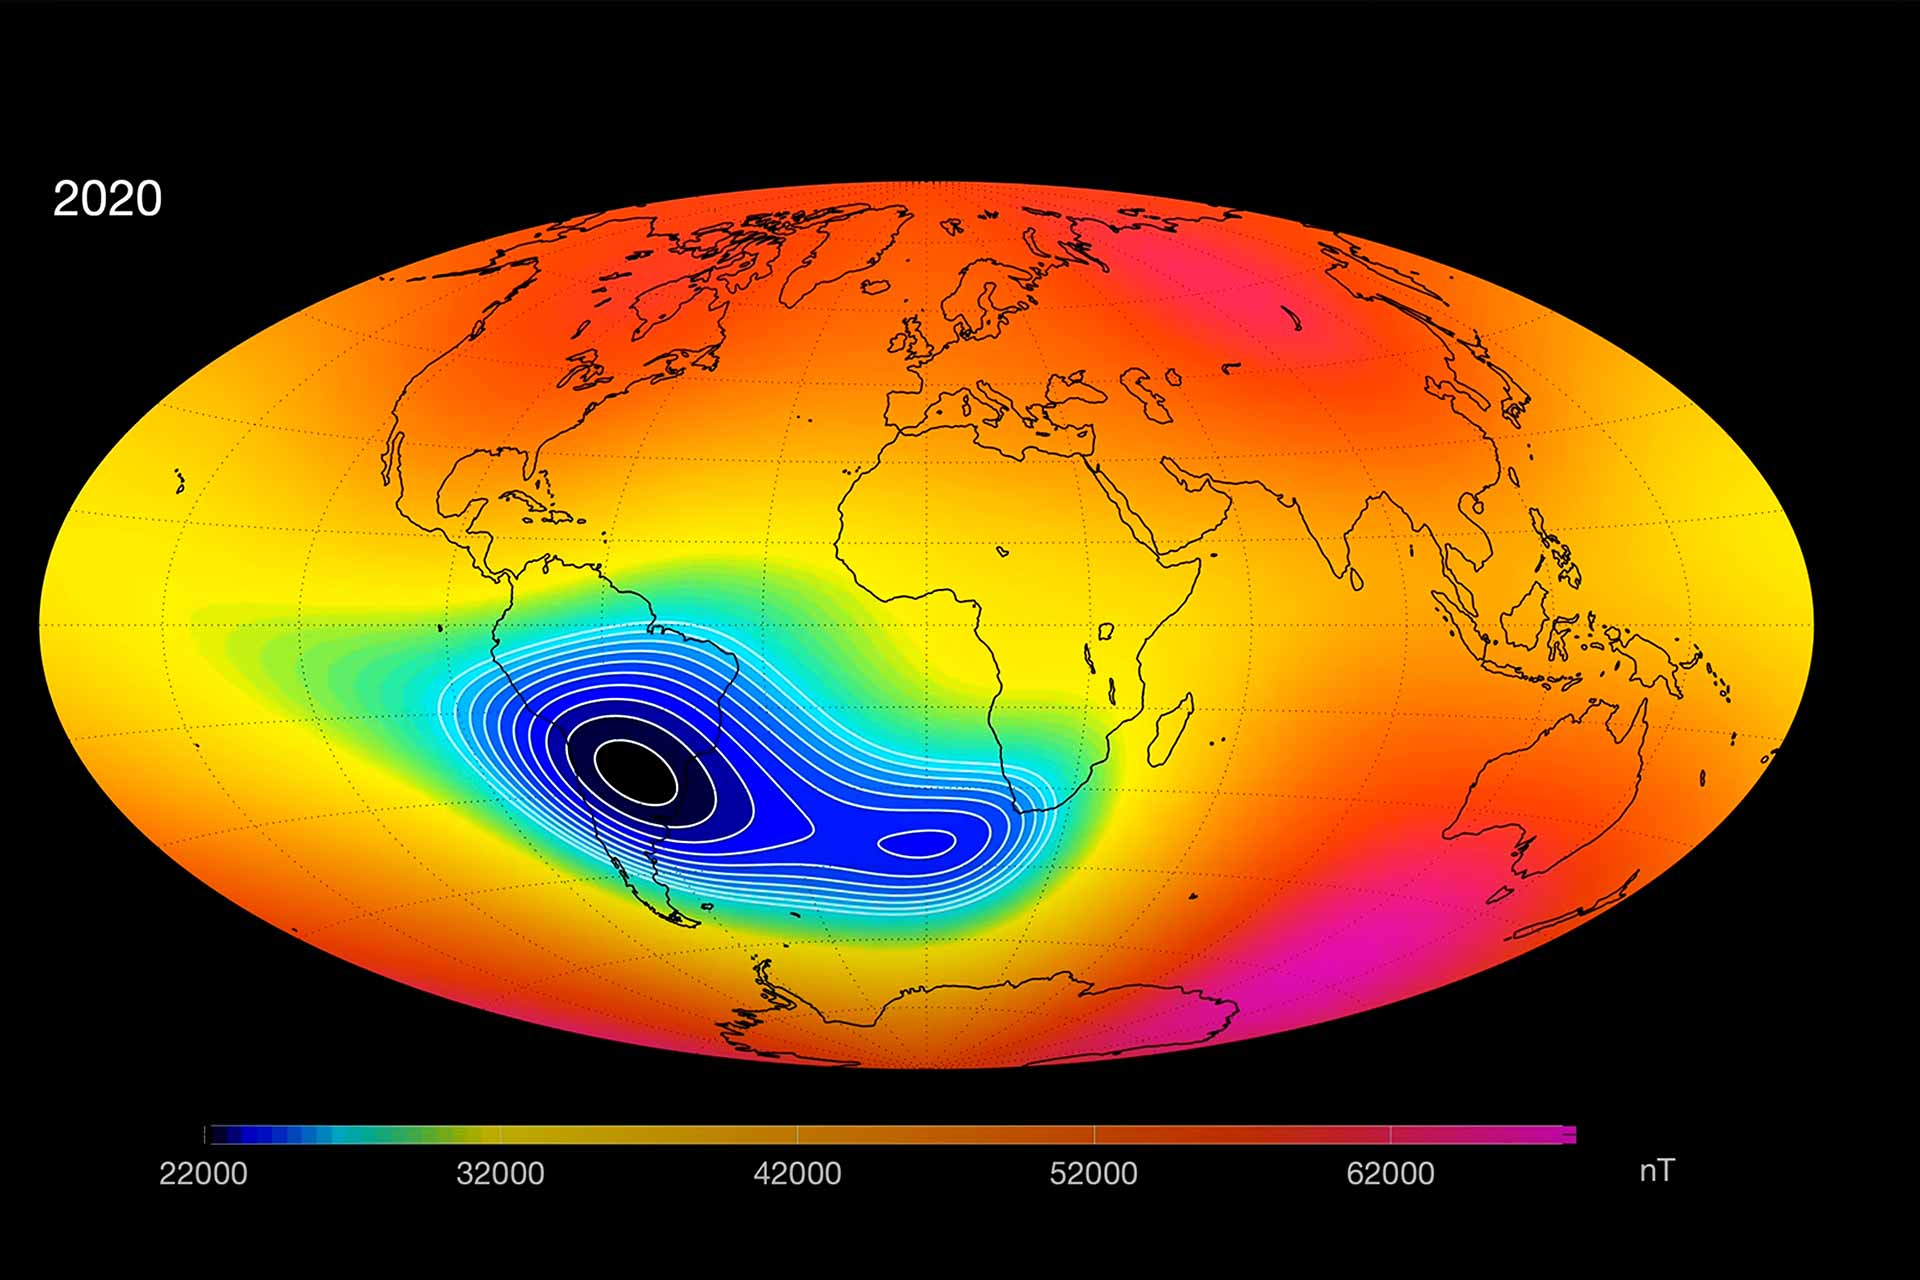 ESA - Magnetic field has become rapidly weaker